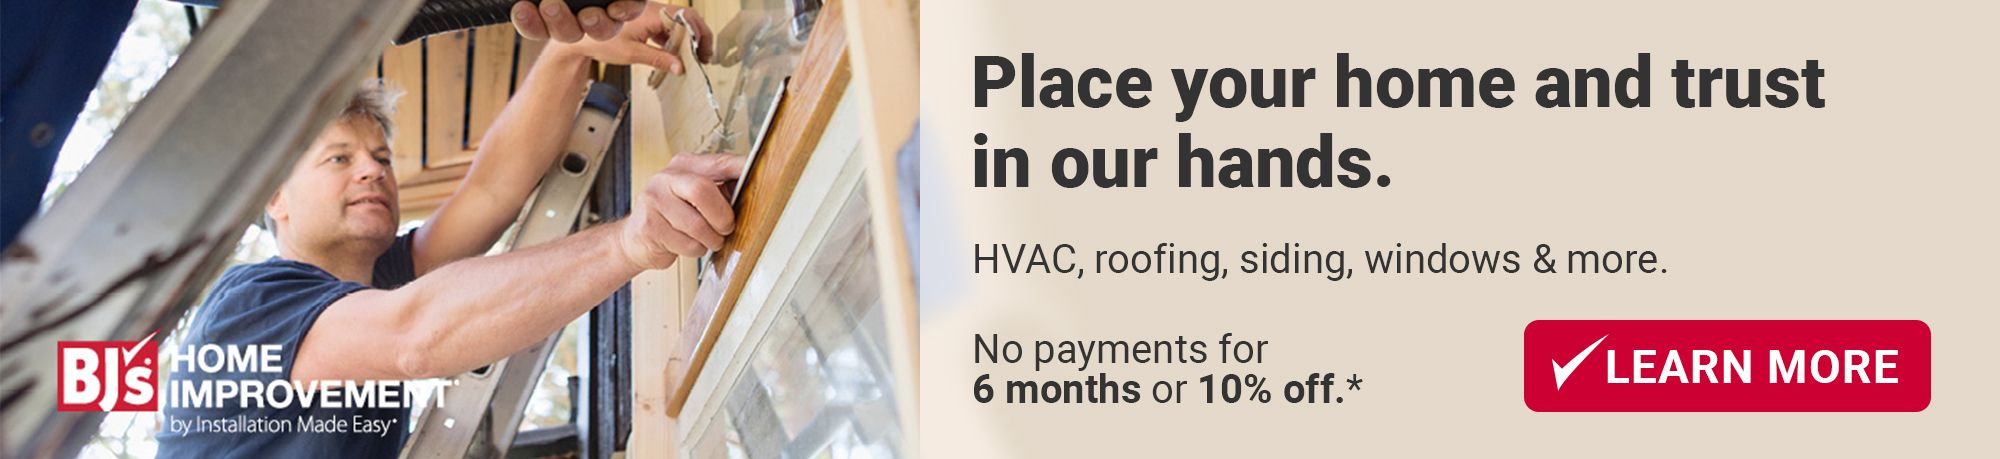 Place your home and trust in our hands. Improvements or repairs. Choose your savings: 0% financing OR 10% off.* Learn More